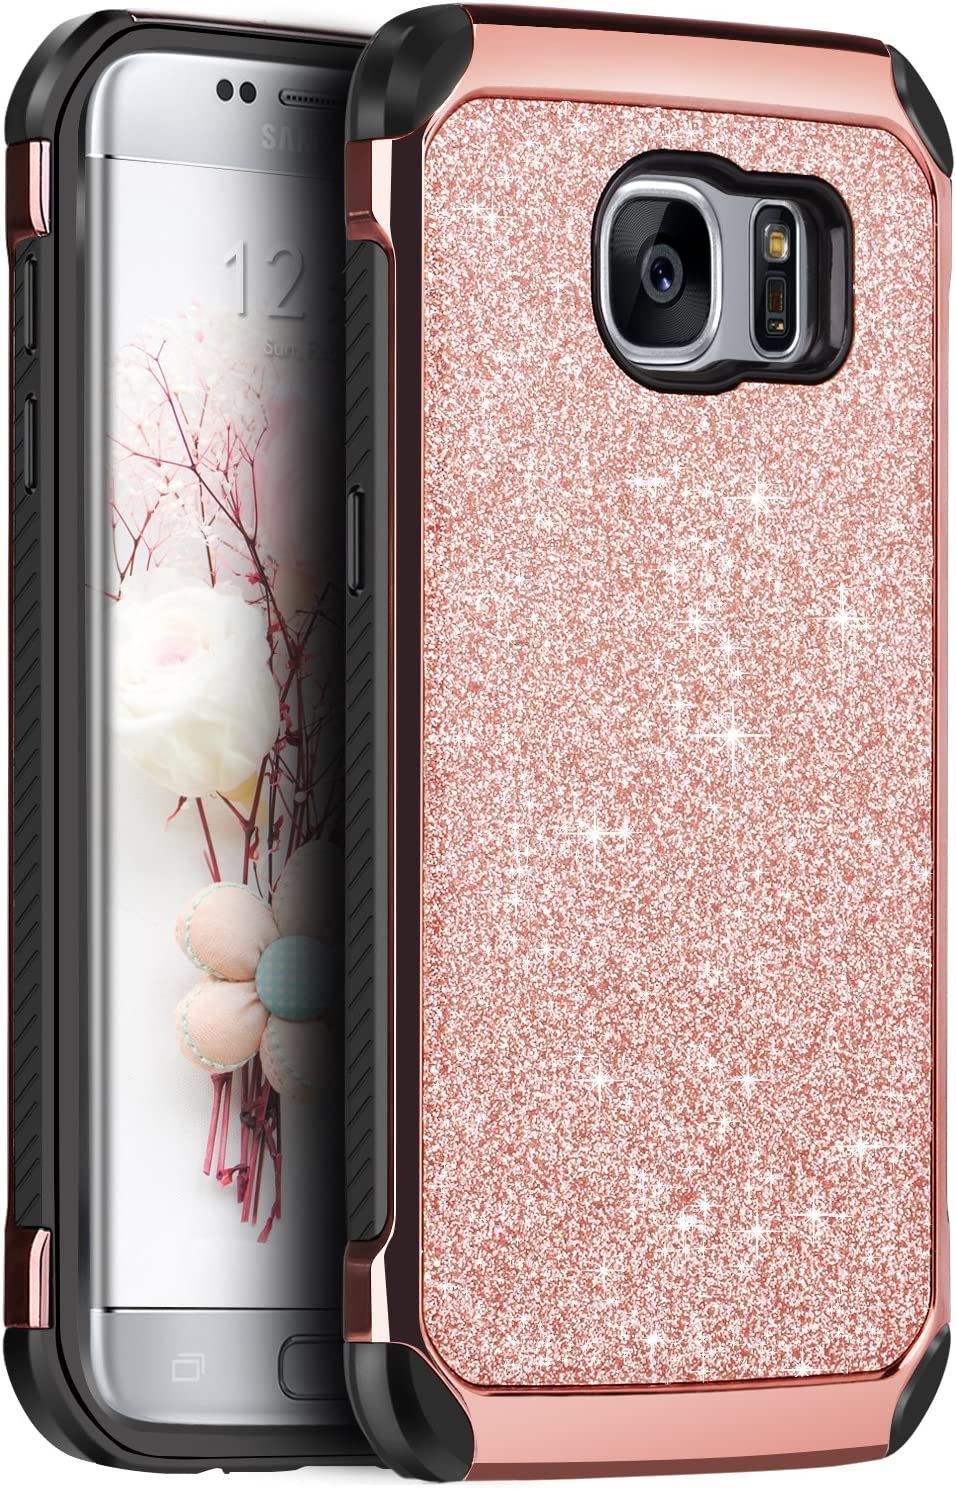 Case for Galaxy S7 Edge, BENTOBEN Luxury Glitter Bling 2 in 1 Hybrid Hard Covers Laminated Sparkly Shiny Faux Leather Chrome Shockproof Bumper Protective Case for Samsung Galaxy S7 Edge, Rose Gold